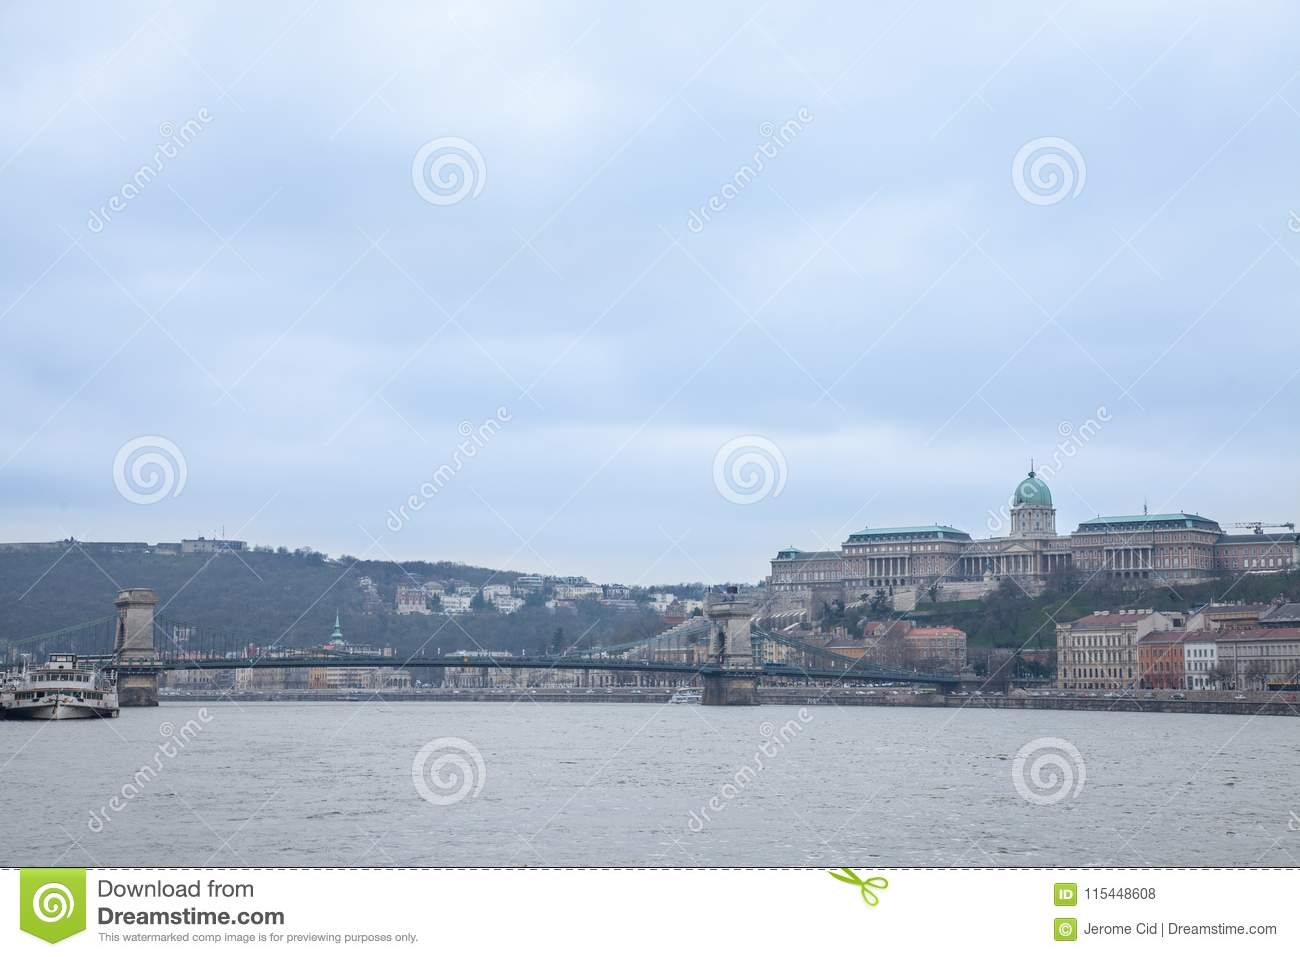 Buda Castle seen from Pest with the Danube and Szechenyi Chain Bridge in front.